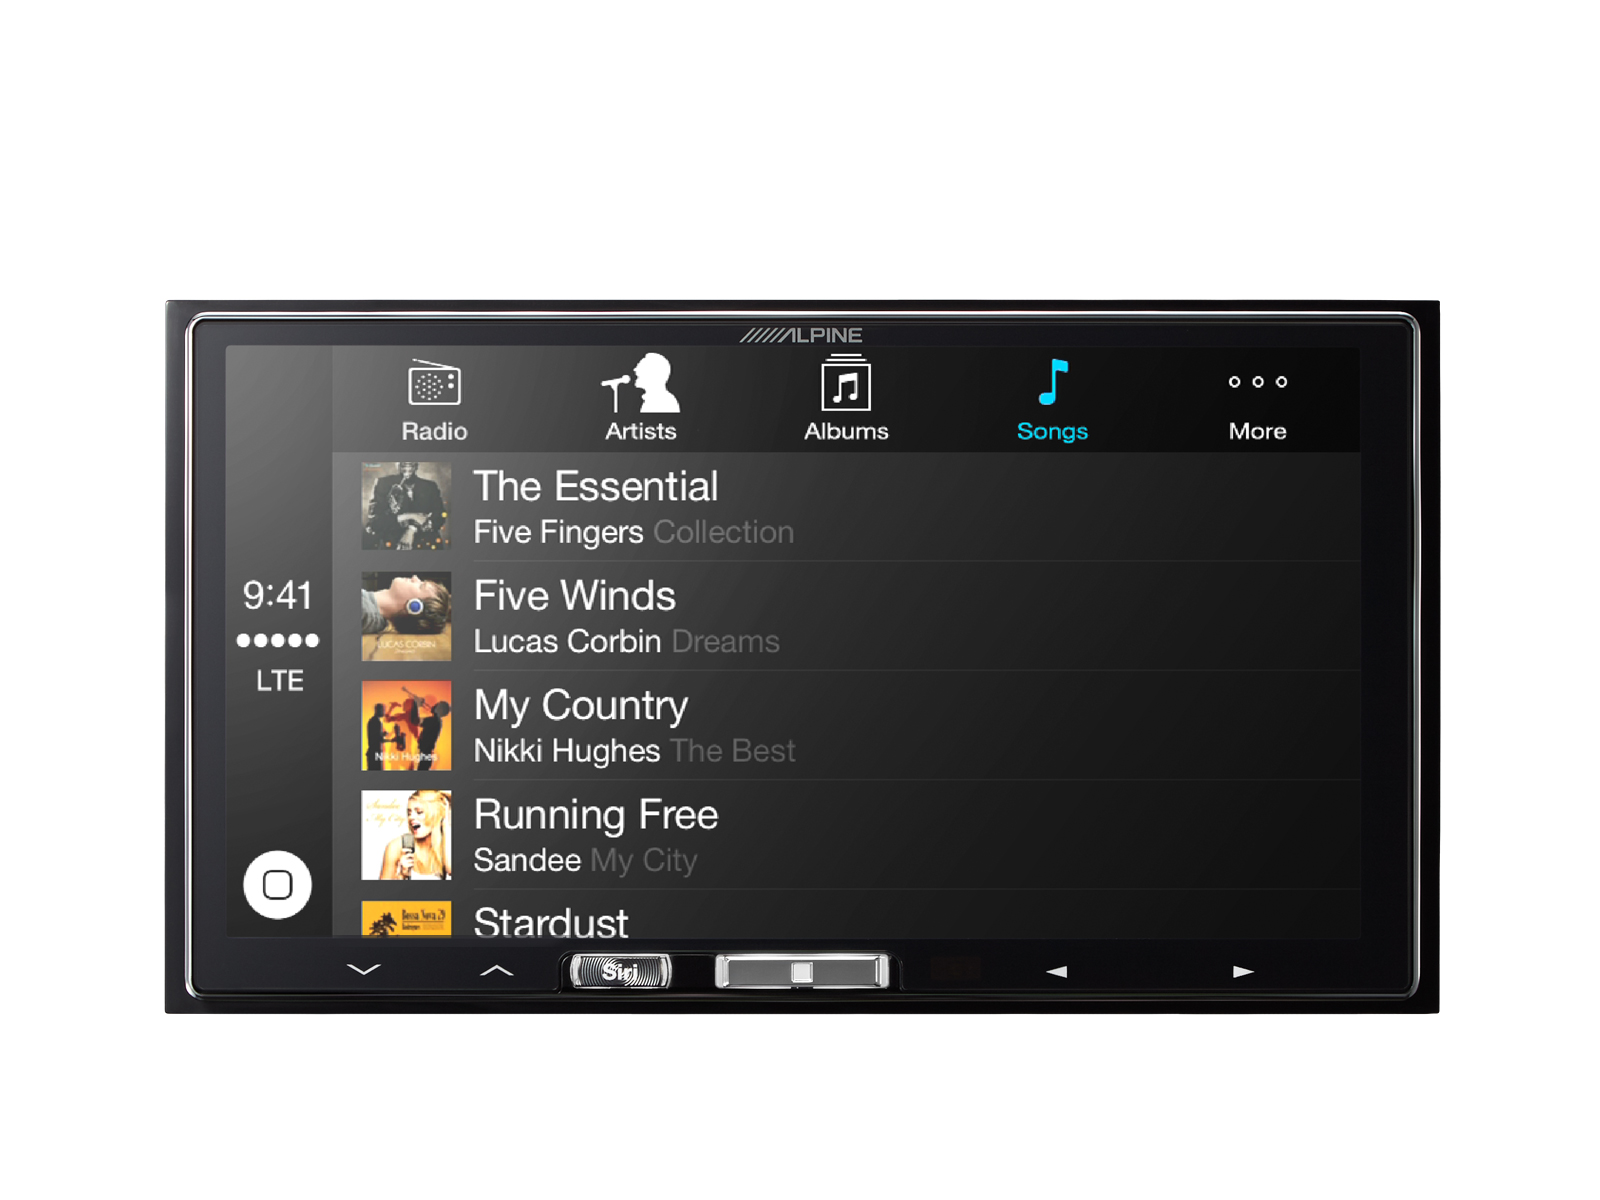 vw polo 9n central locking wiring diagram belling cooker in dash digital media receiver with apple carplay alpine ilx 700